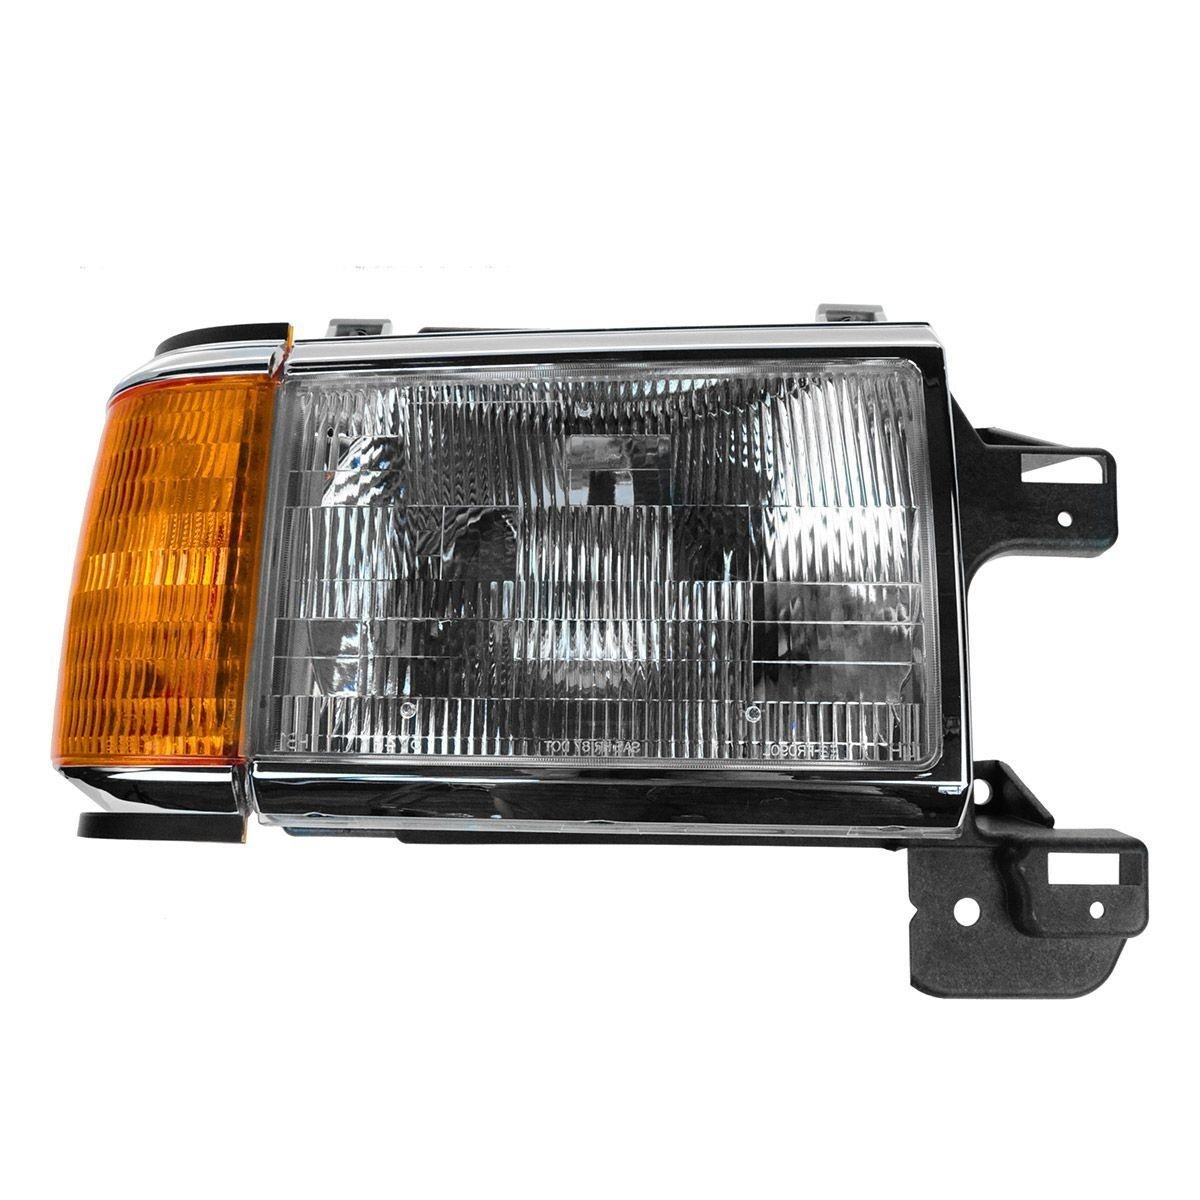 Fleetwood Bounder 1997-1999 RV Motorhome Pair (Left & Right) Replacement Front Headlights & Signal Lights by BuyRVlights (Image #4)